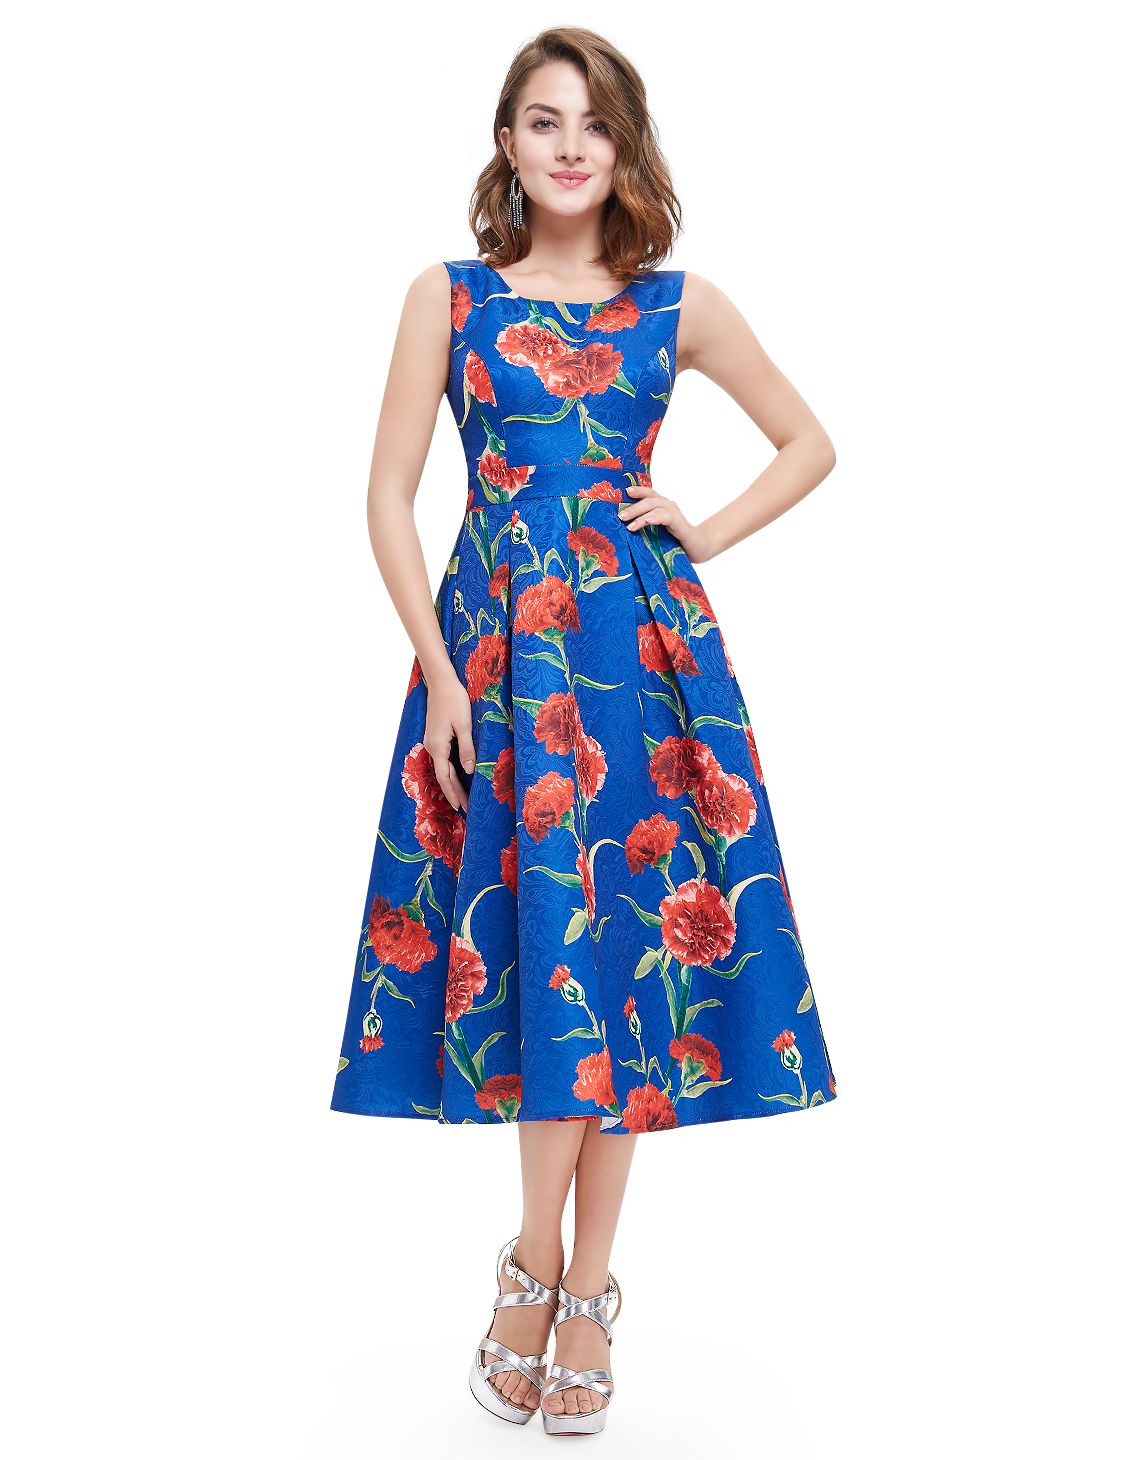 AlisaPan Womens Round Neck Short Casual Dress Printed Formal Prom Dresses 05443